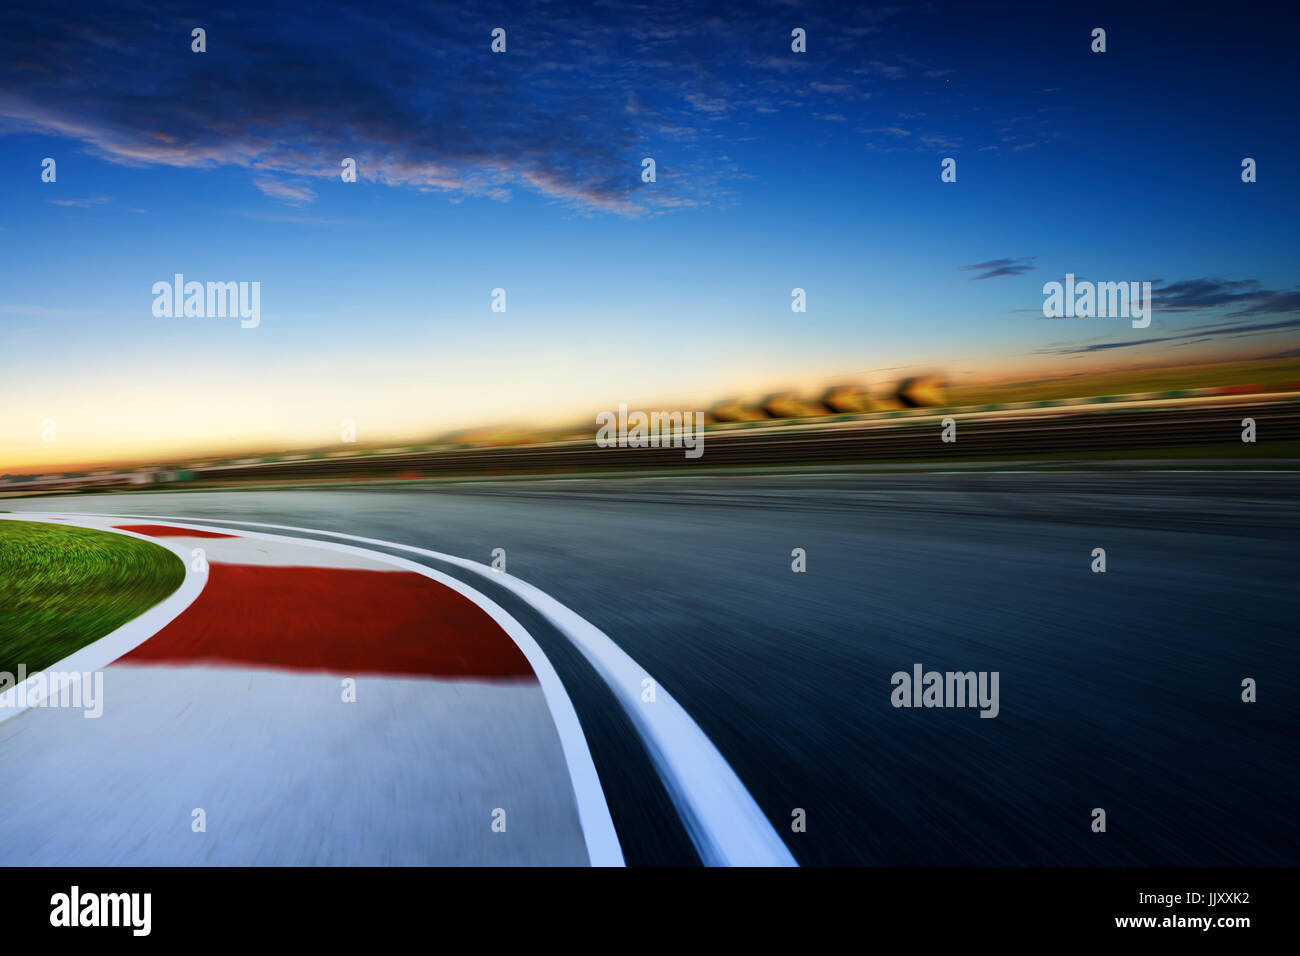 Motion blurred racetrack ,cold mood , early morning scene . - Stock Image